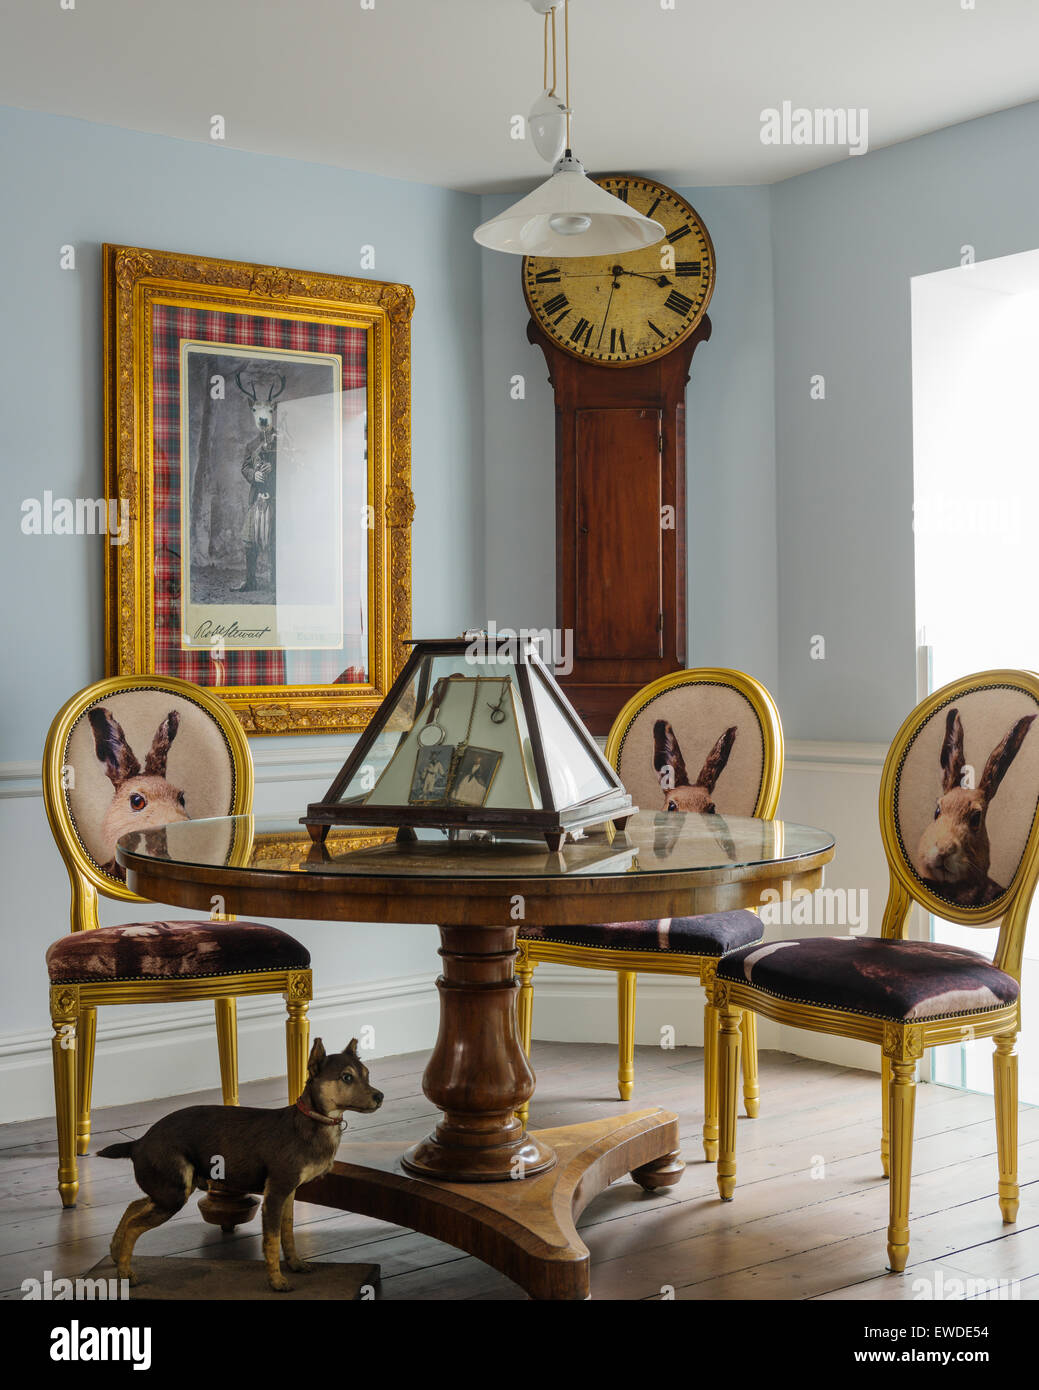 Three gilt dining chairs covered in Cory Visitorian hare head fabric round circular table in room with antique clock - Stock Image